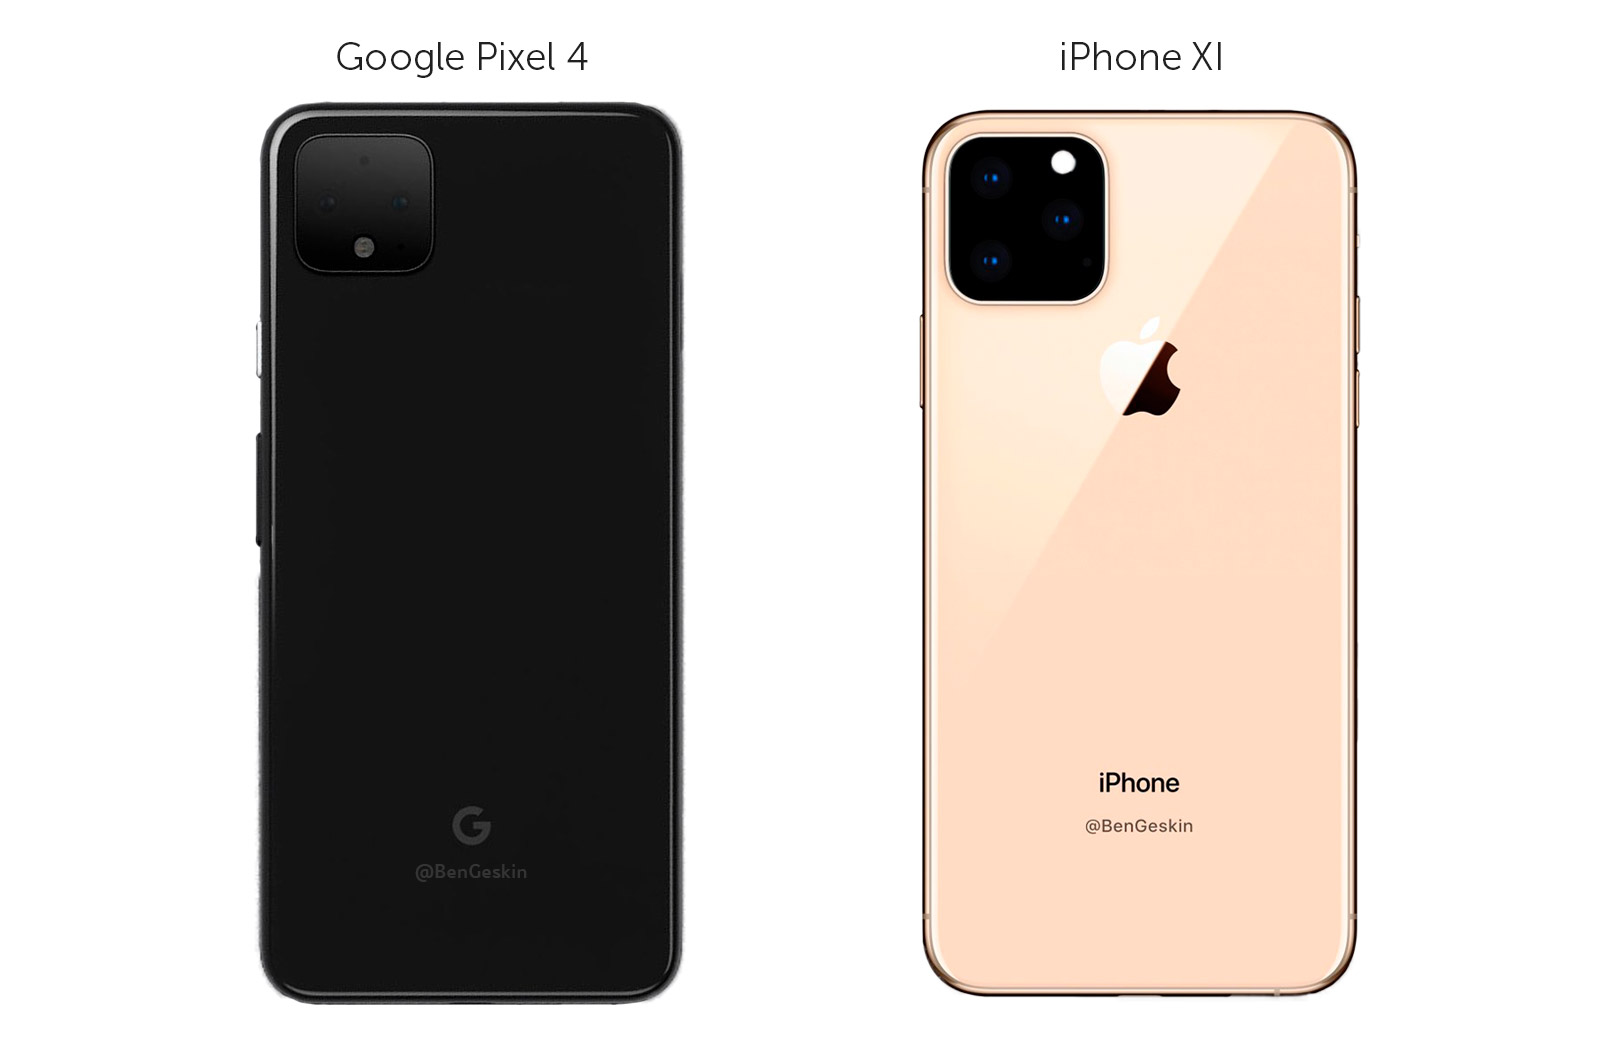 iPhone 11 vs Google Pixel 4